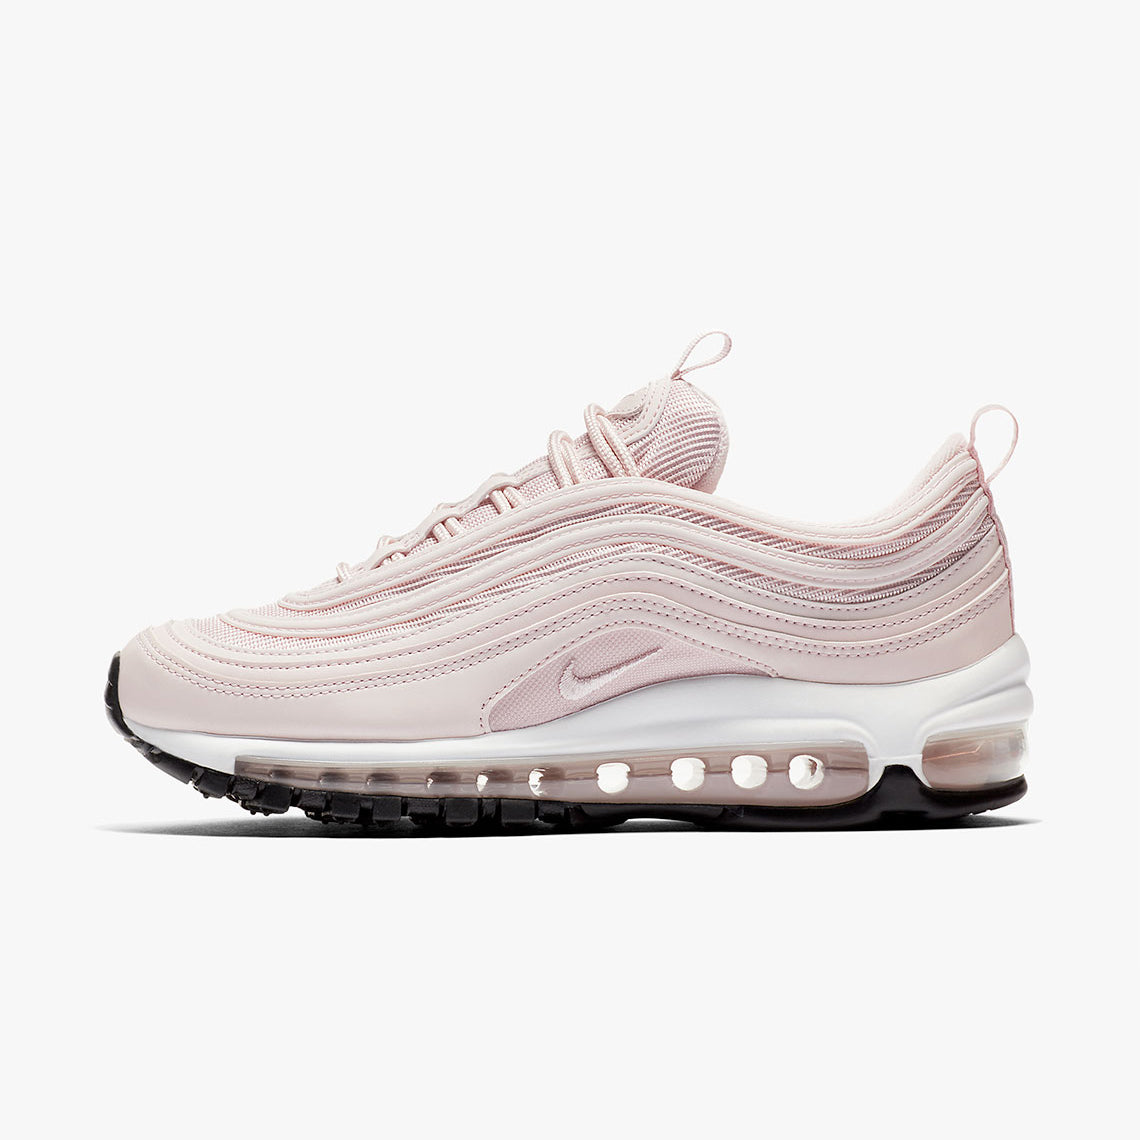 c64a996abe43 Nike Wmns Air Max 97 BARELY ROSE BARELY ROSE-BLACK (921733-600 ...